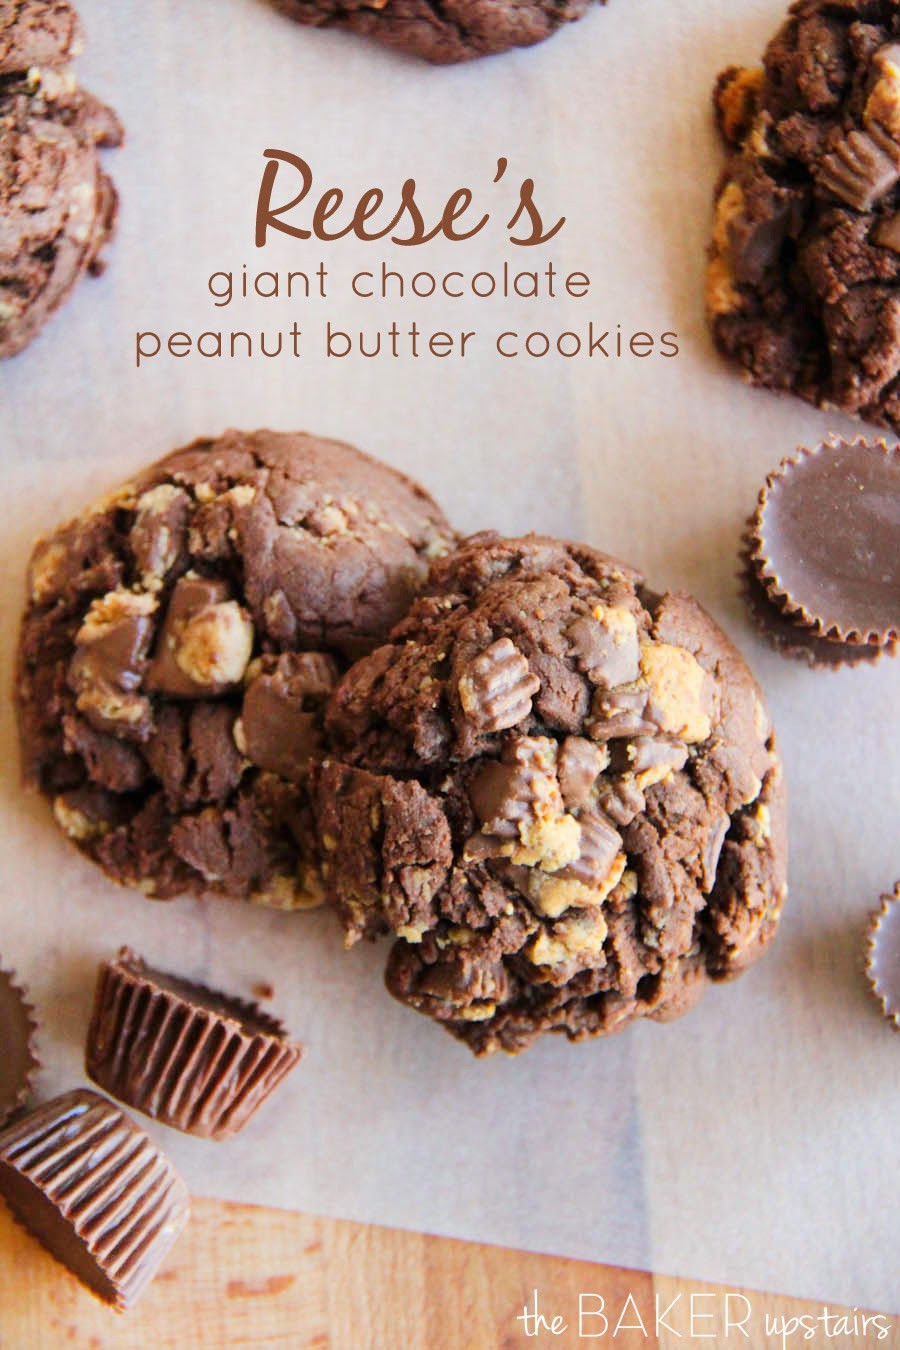 Peanut Butter Chocolate Cookies  The Baker Upstairs Reese s giant chocolate peanut butter